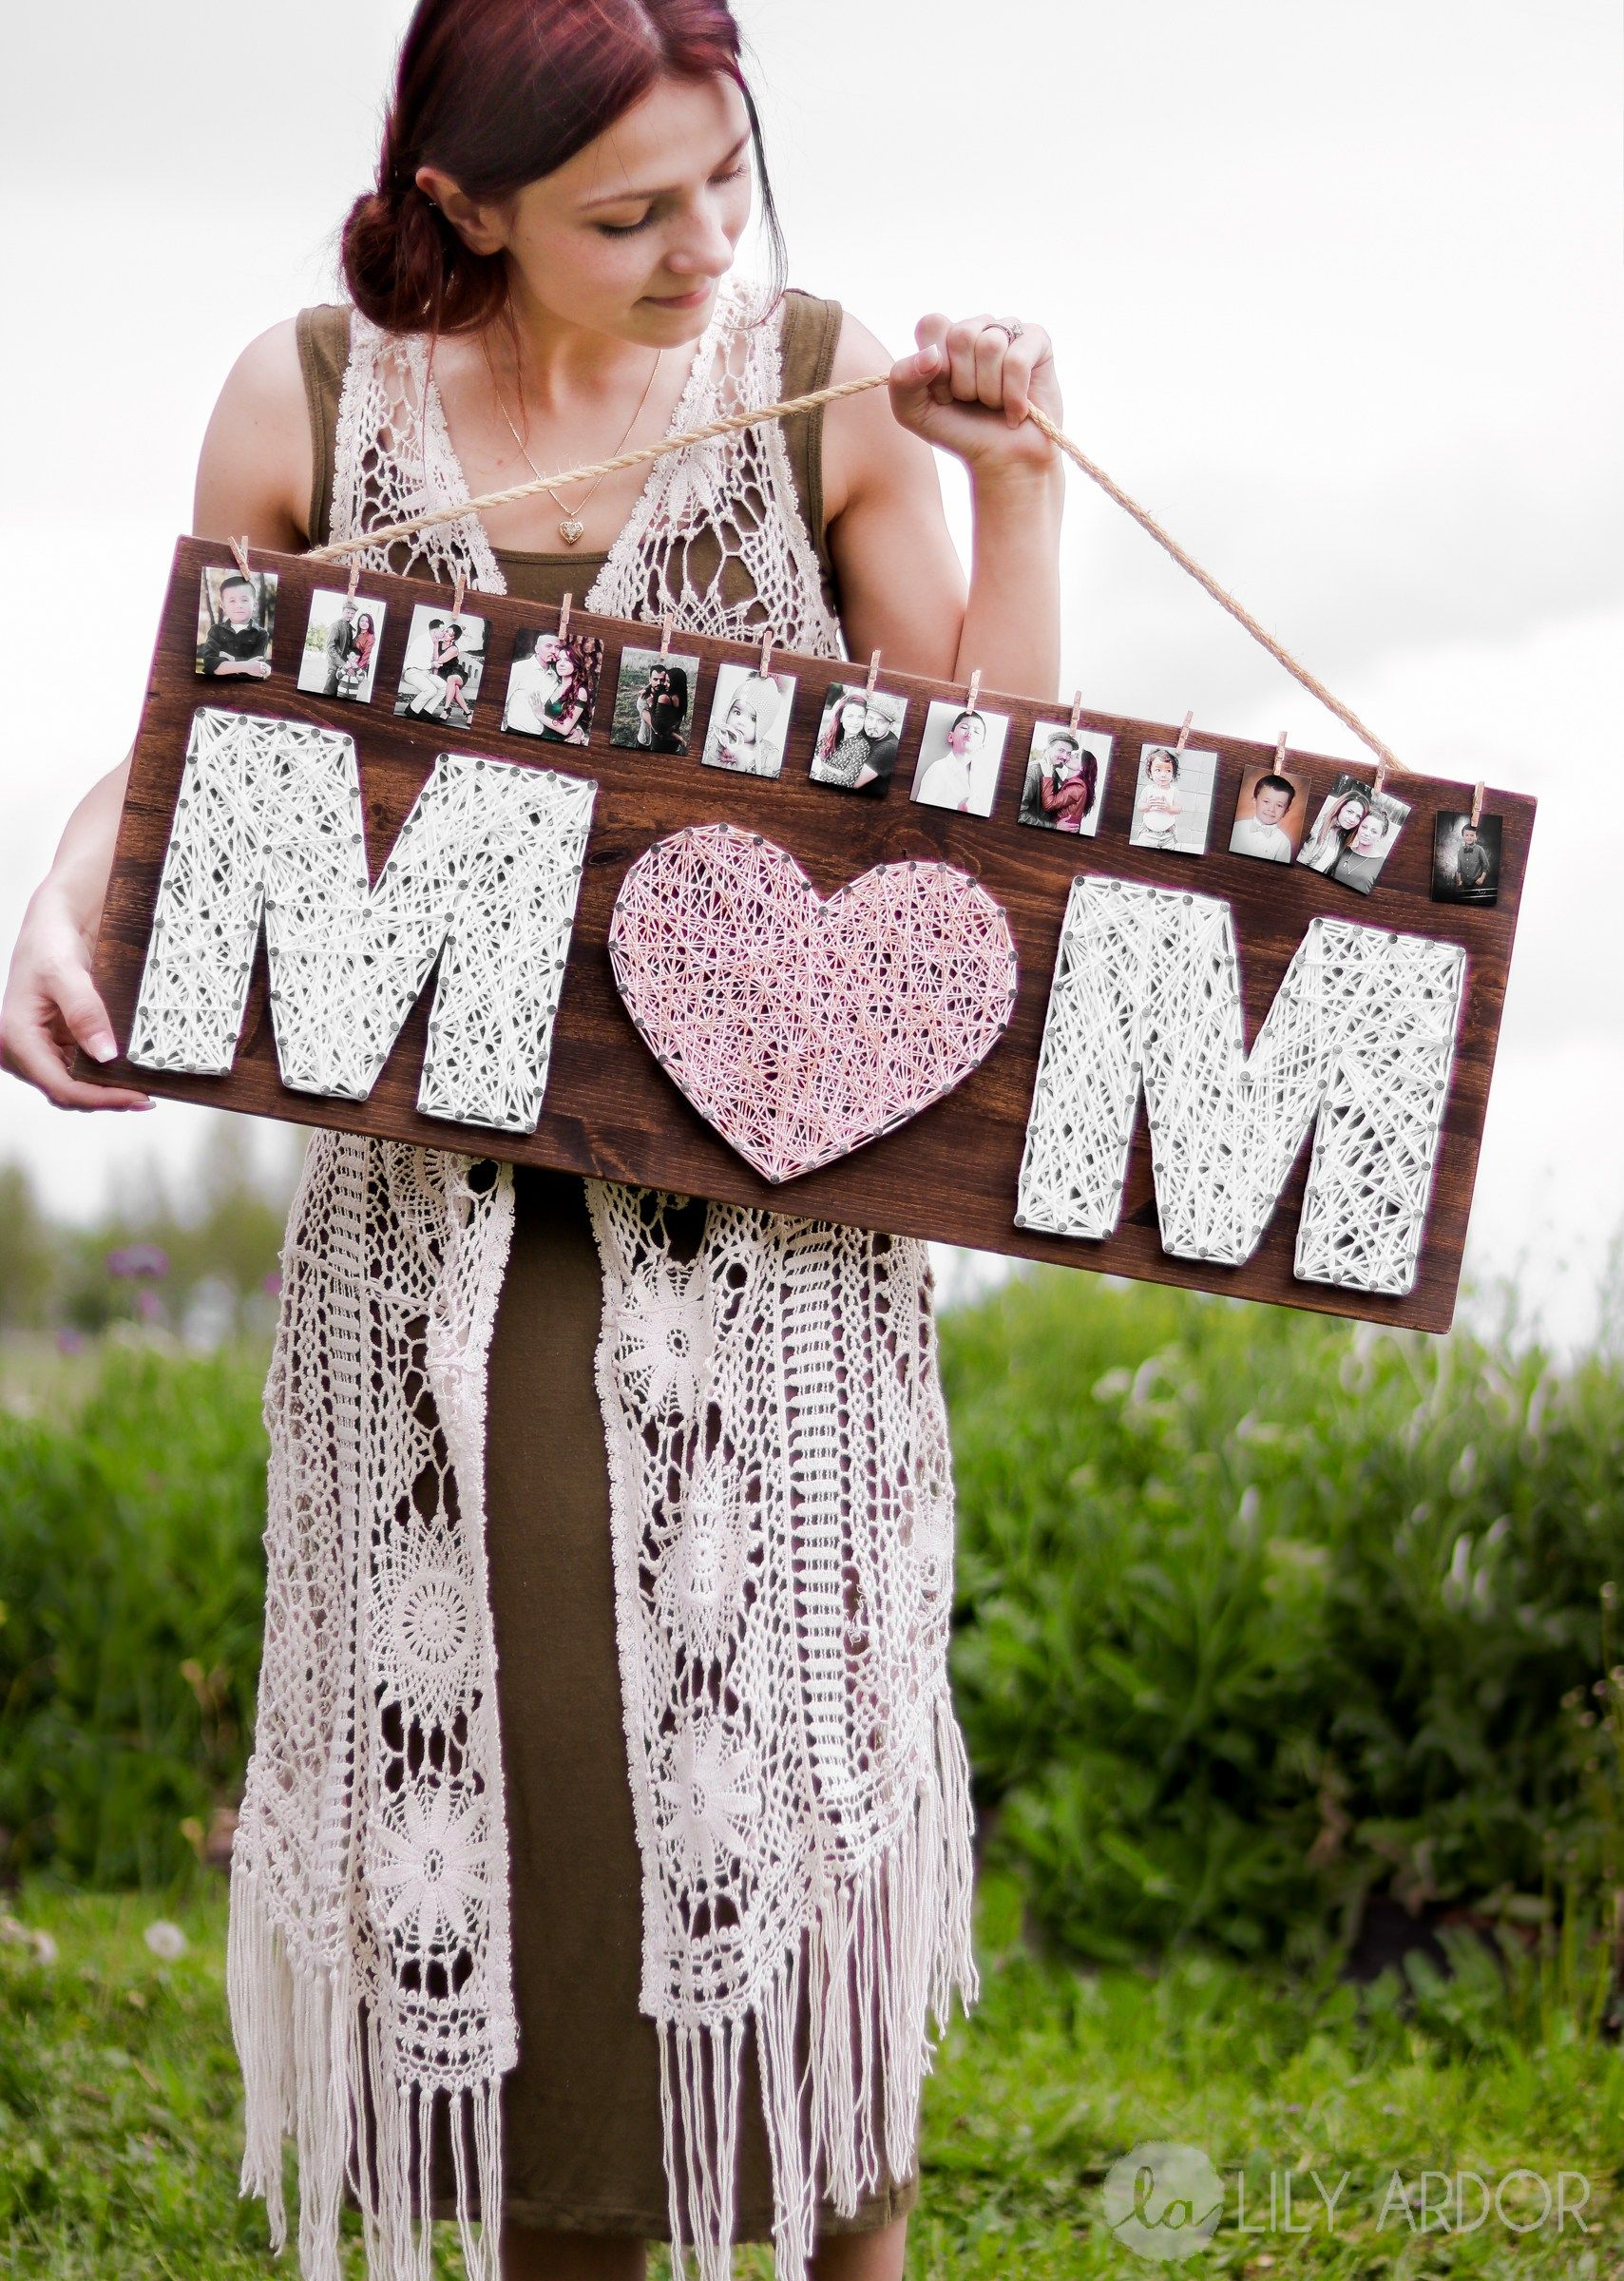 String Art Mother's Day gift - personalized DIY Mother's Day present with photos